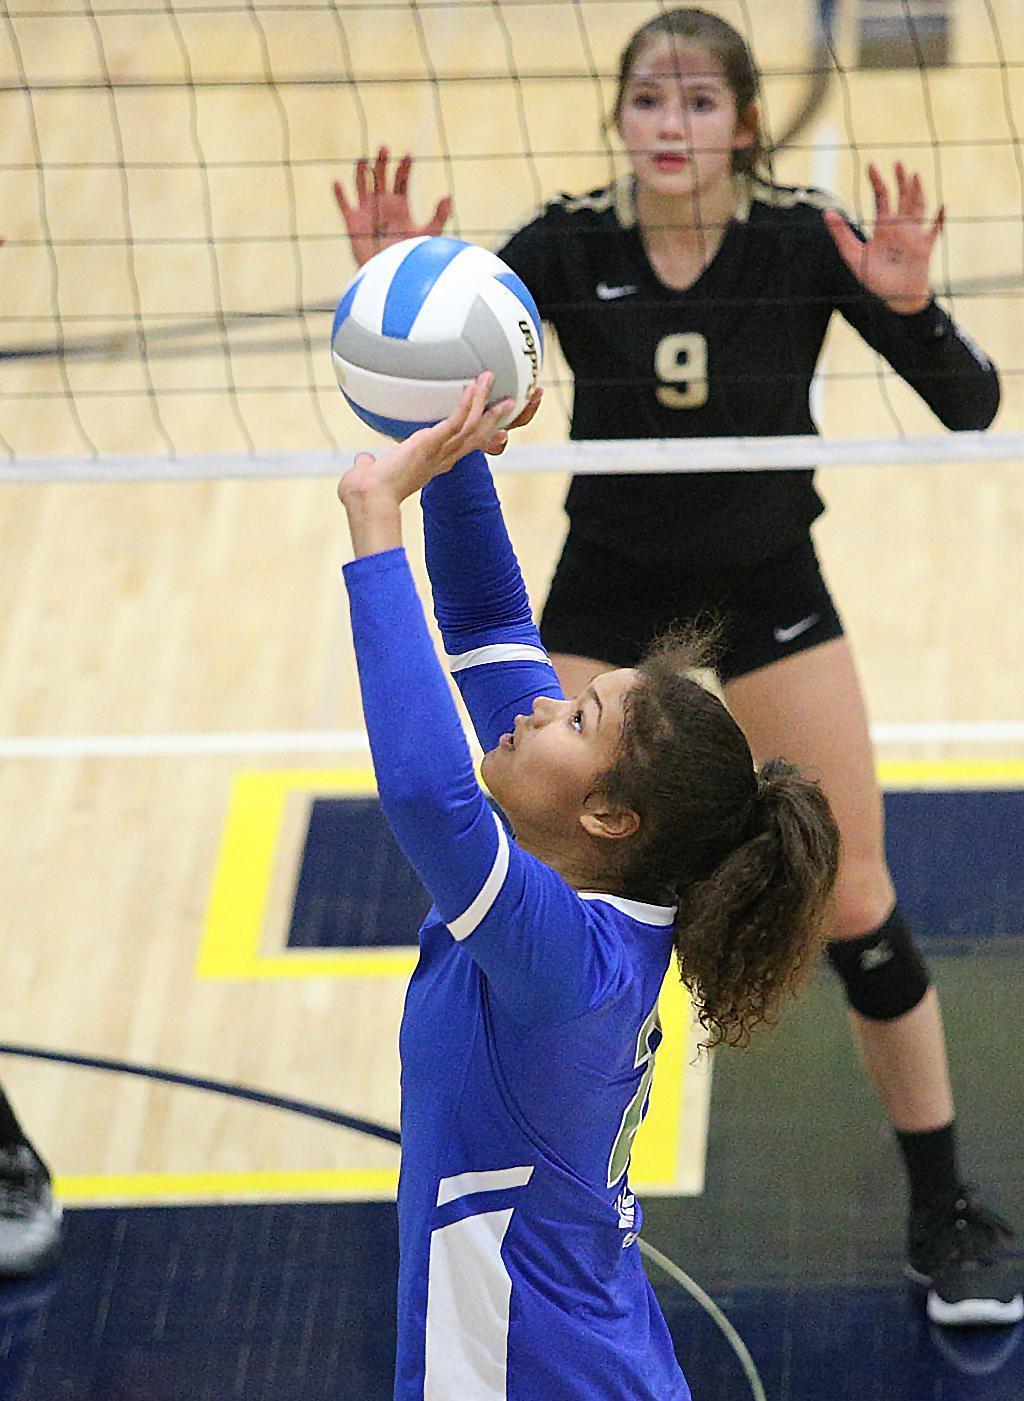 Sophomore setter Kennedi Orr led Eagan with 16 assists and 14 kills on Saturday night. The Wildcats advance to their sixth-straight Class 3A state tournament after defeating the Raptors in three sets. Photo by Cheryl Myers, SportsEngine